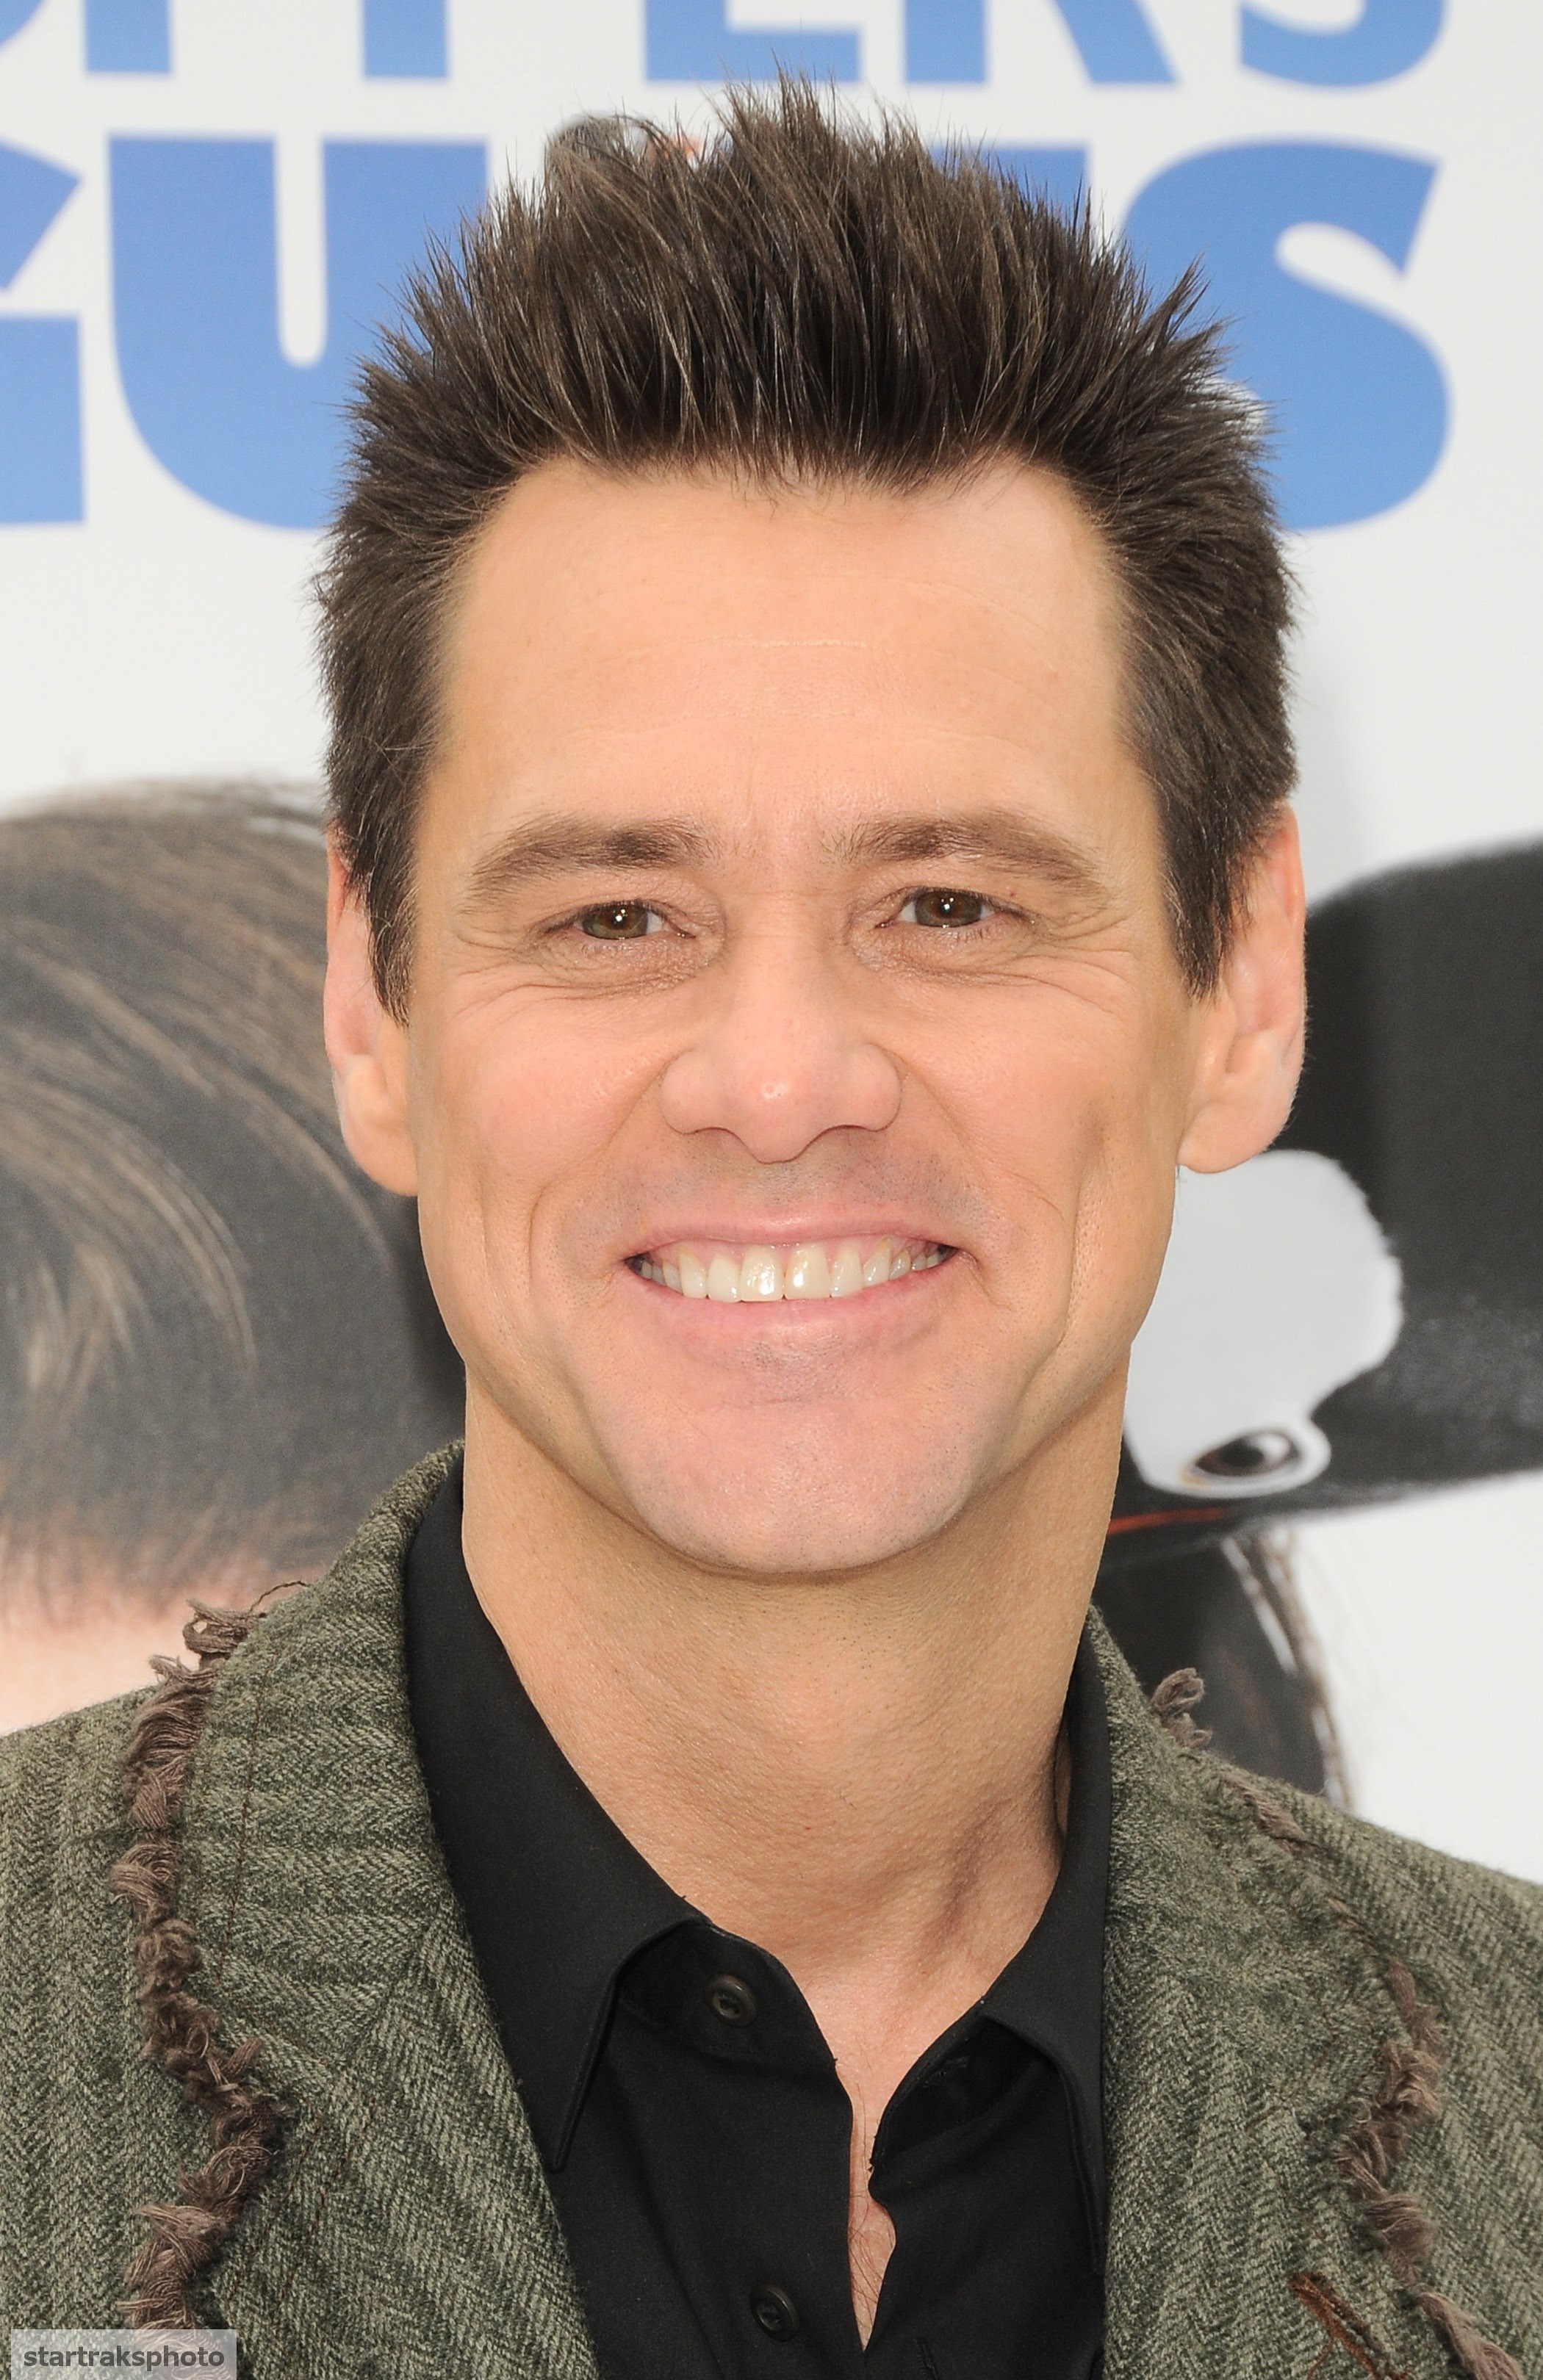 Jim Carey | Known people - famous people news and biographies Jim Carrey